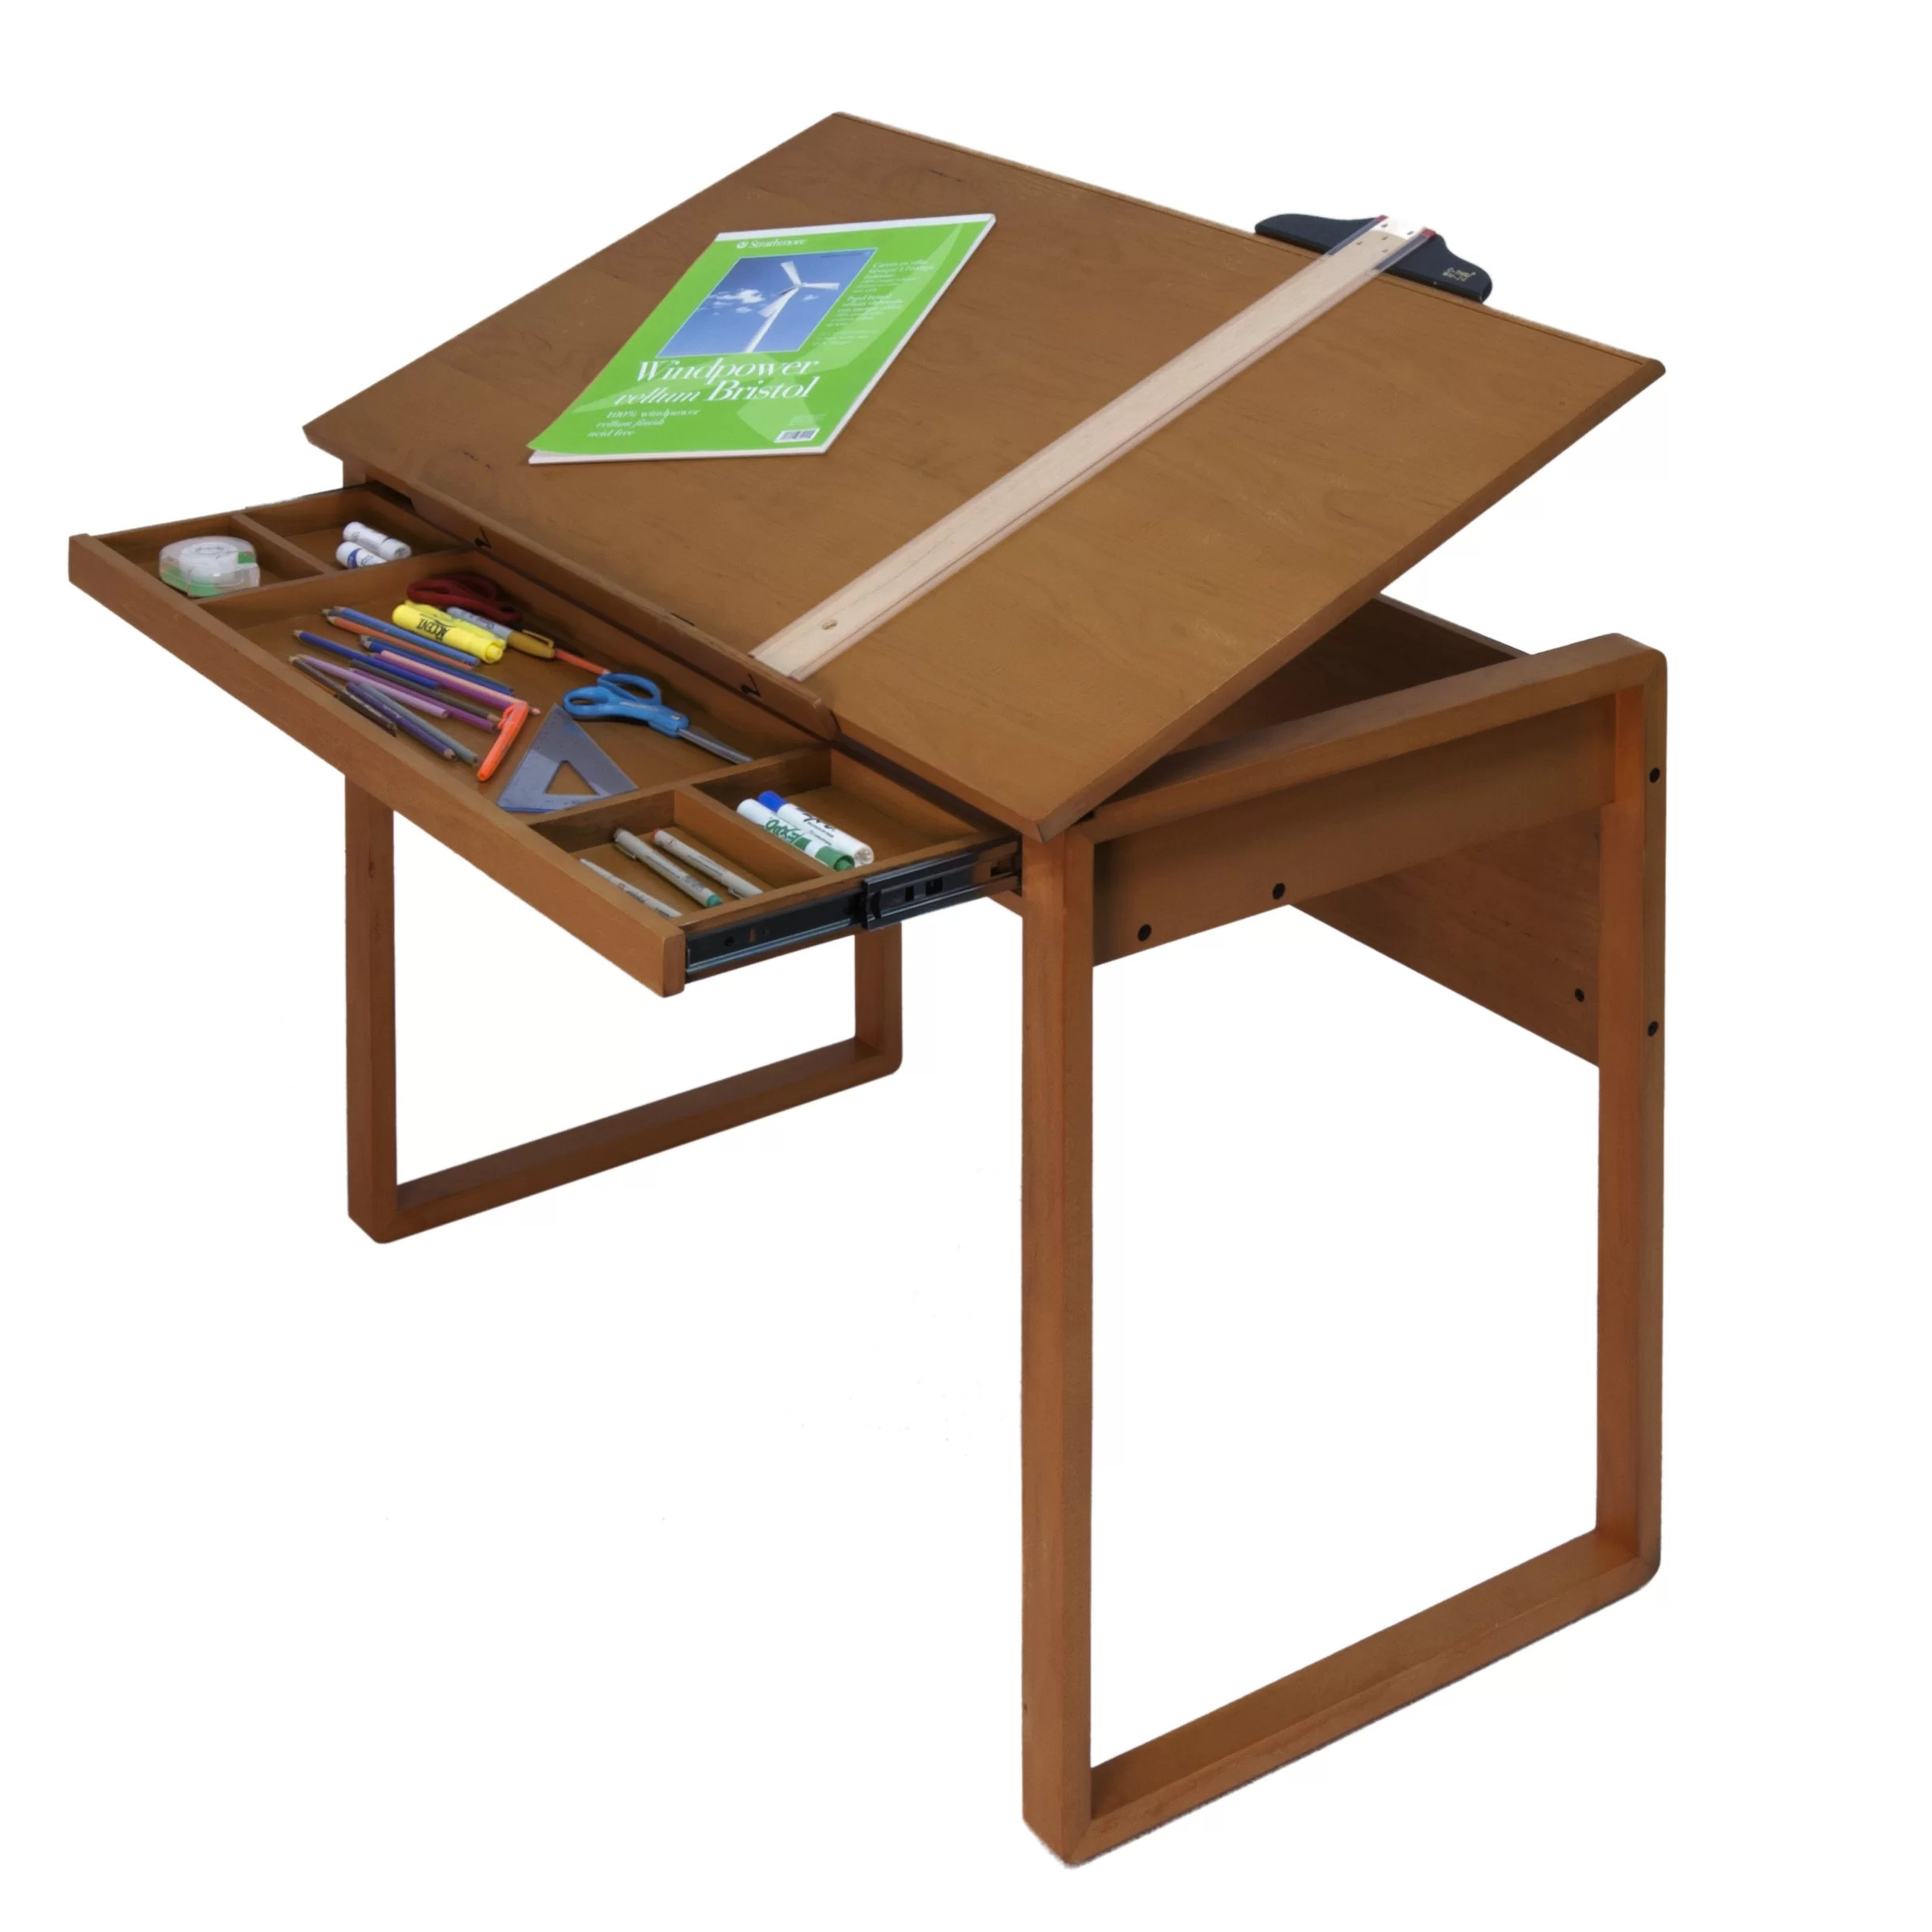 Drafting Table Design Studio Designs Ponderosa 42 Quot W X 24 Quot D Drafting Table